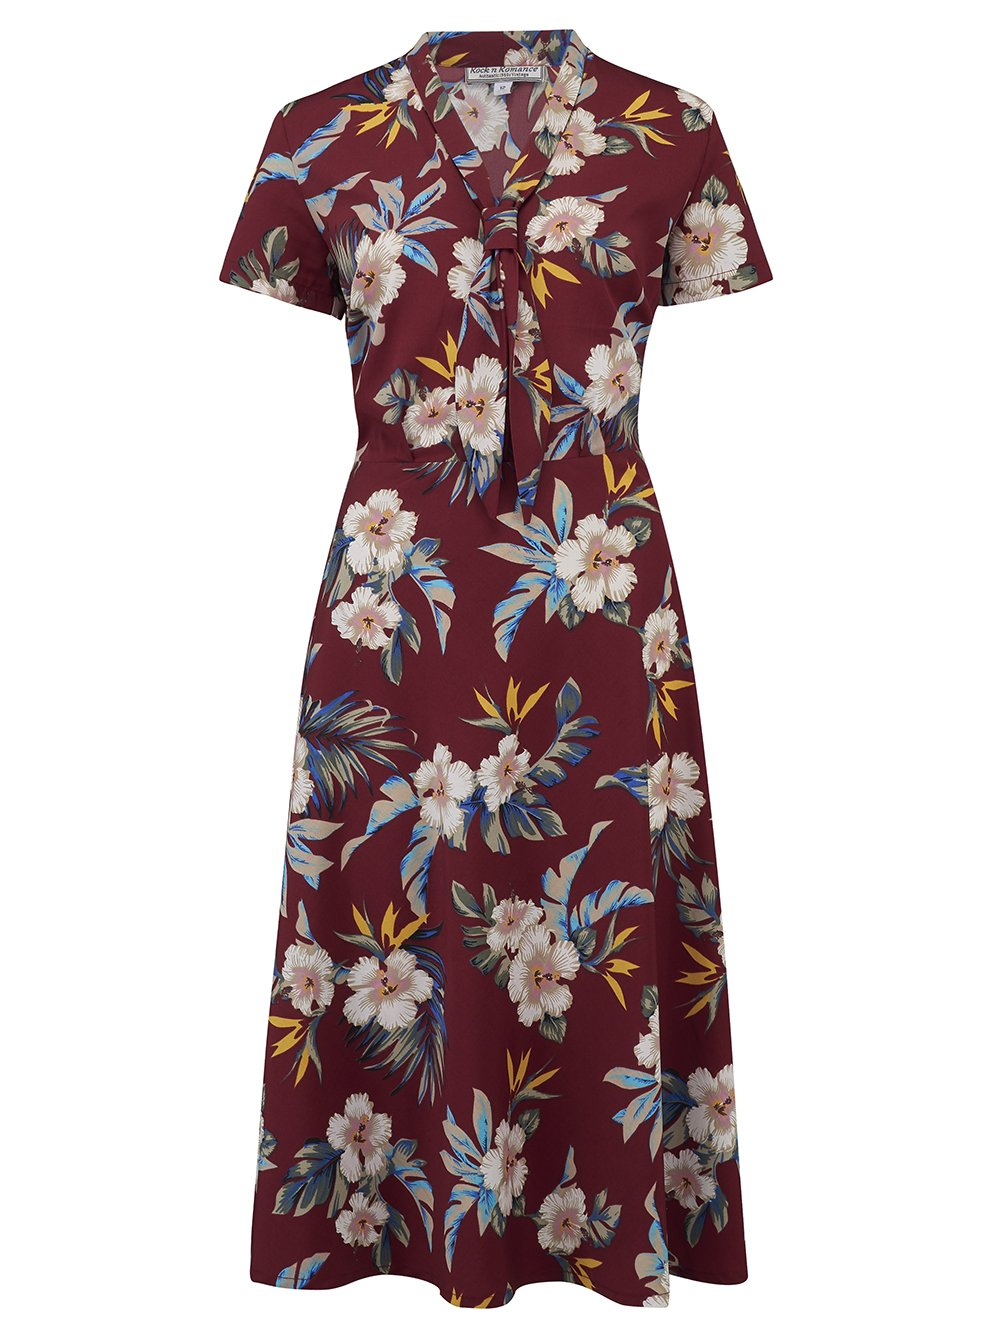 1940s Dresses | 40s Dress, Swing Dress Sample Sale Jean Tea Dress in Wine Hawaiian Print Perfect 1950s Tiki Style £25.00 AT vintagedancer.com